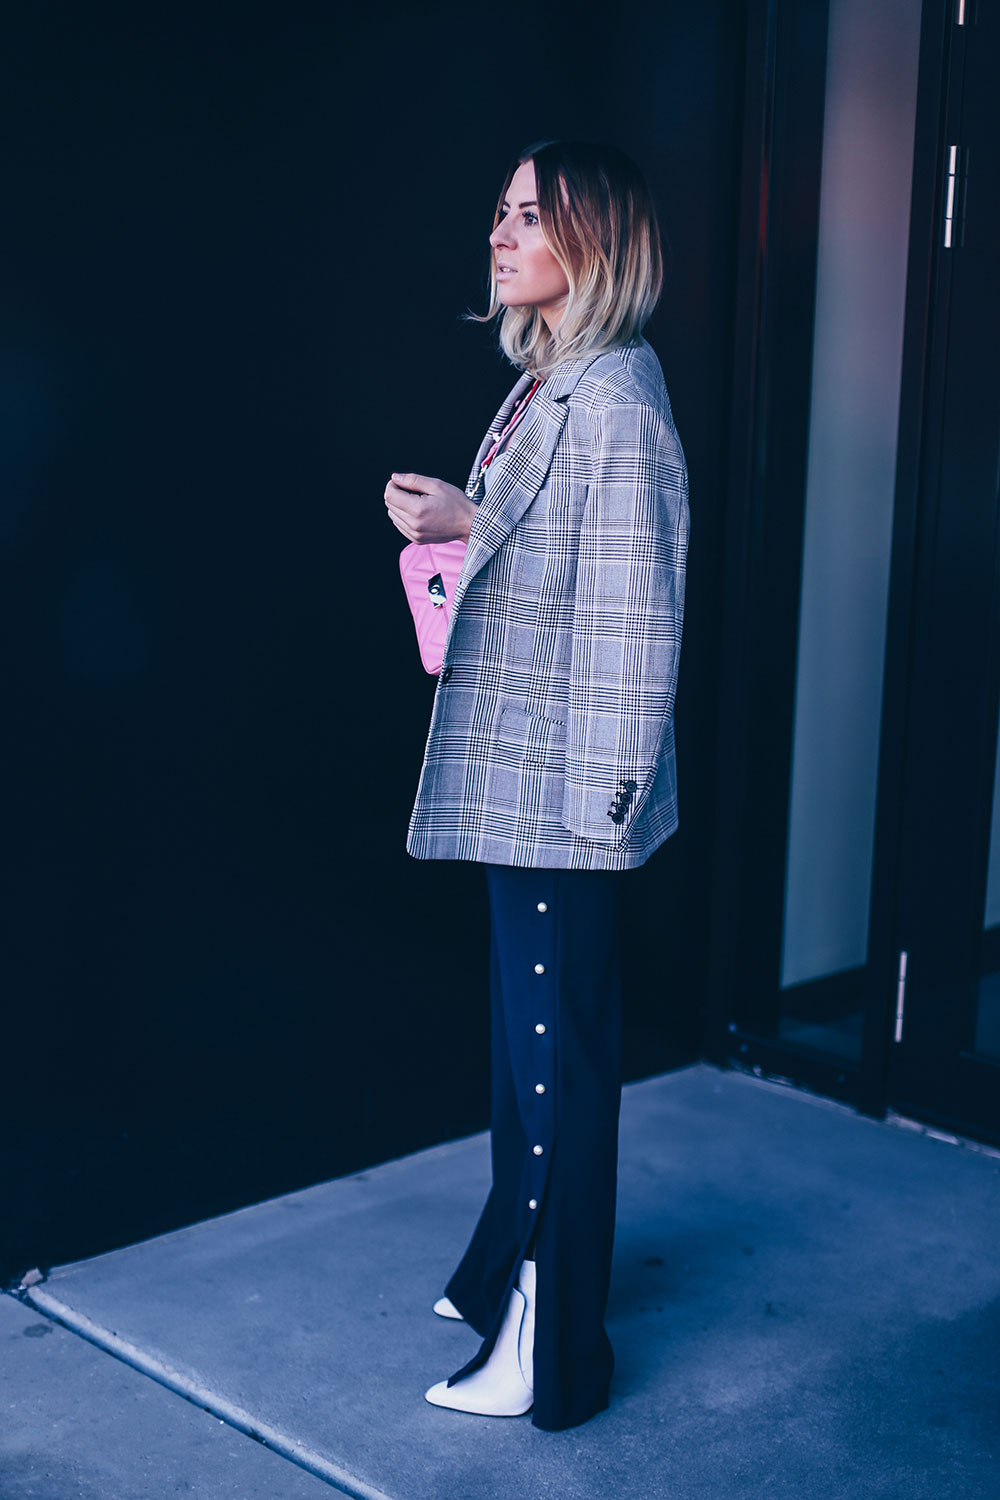 Frühlings Outfit, Hose mit Perlen, Marlenehose stylen, how to wear, Oversize Blazer, Guitar Strap, pinke Tasche, weisse Boots, Fashion Blog, Style Blog, Modeblog, Streetstyle, Tirolblog, www.whoismocca.com